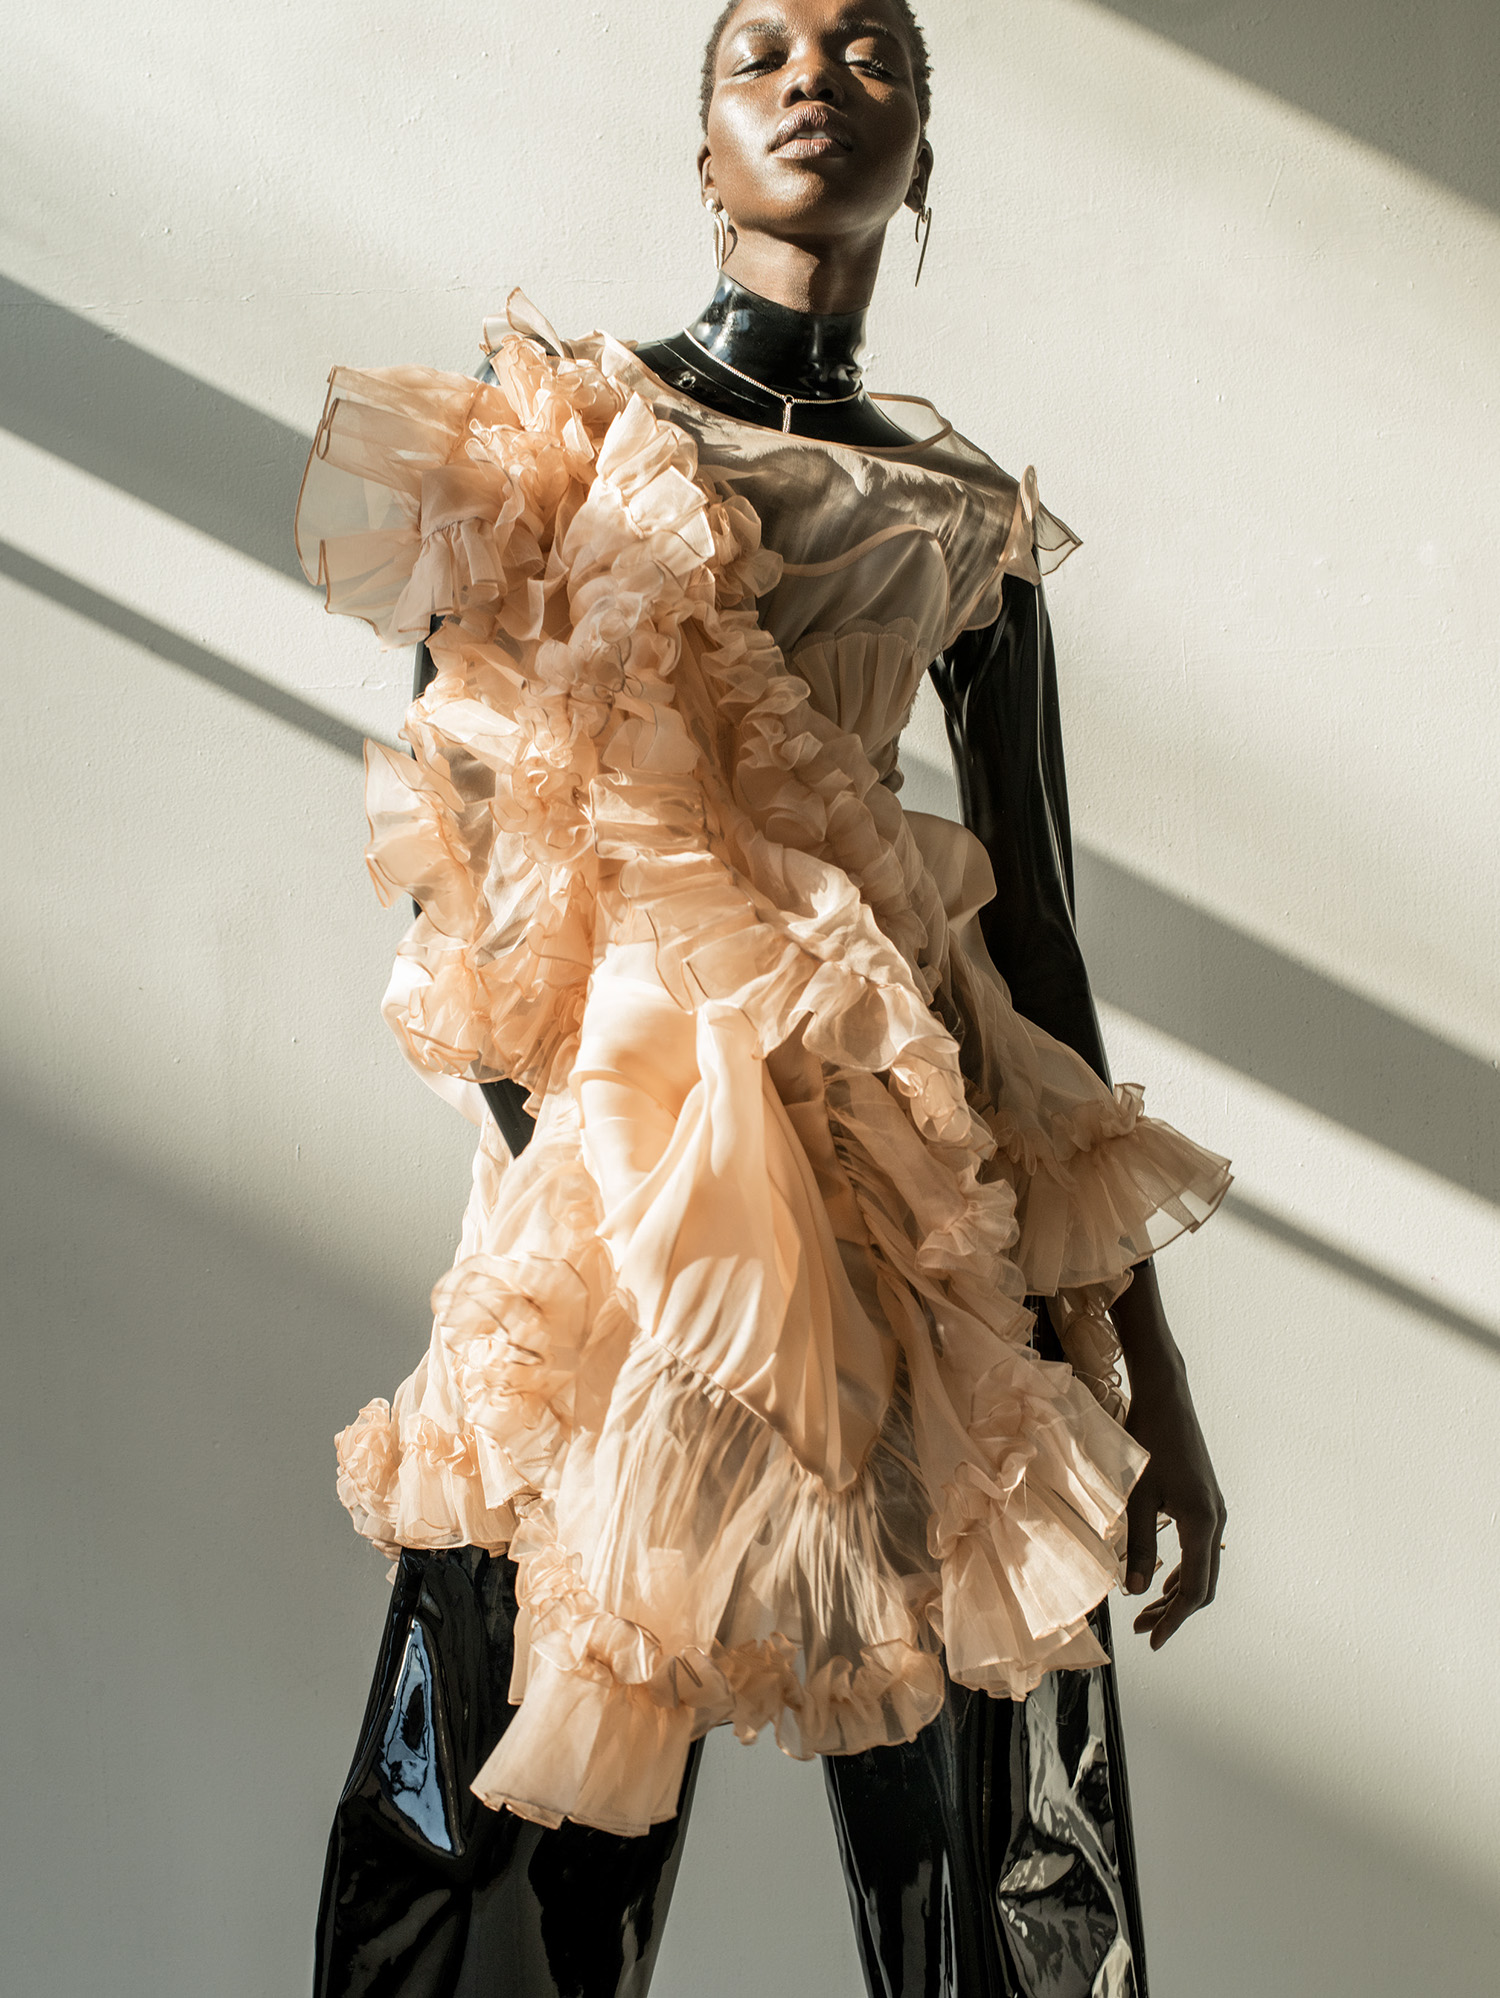 Copy of iris covet book fashion editorial kelsey randall peach silk organza mermaid seashell ruffle hem full skirt sheer dress